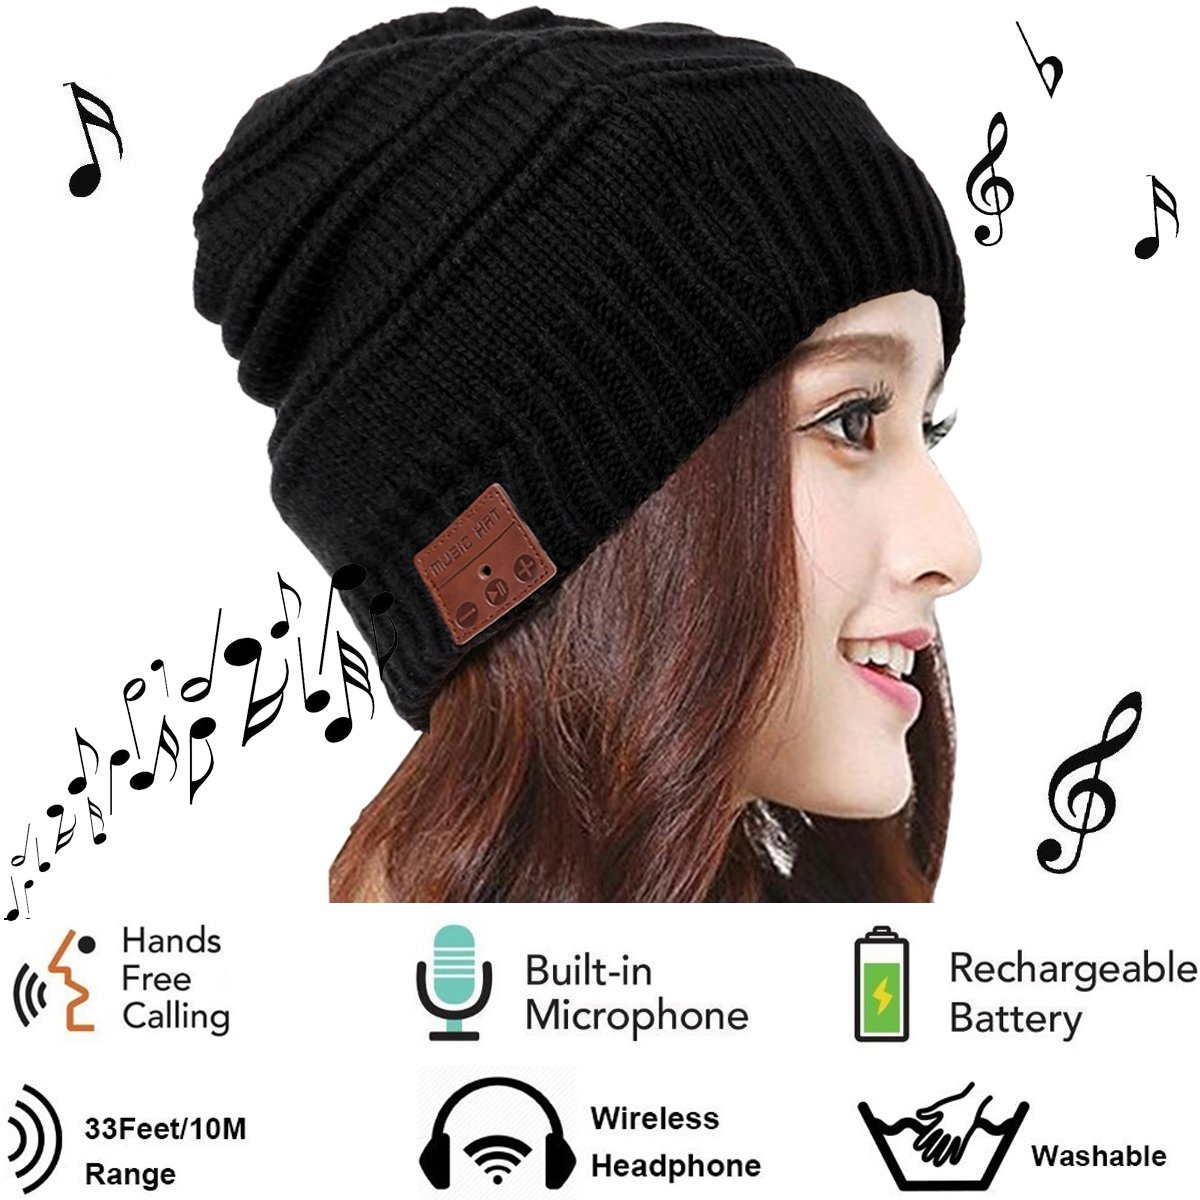 94f6bdd89fe Bluetooth Hat Winter Warm Men Women Boys Girls Teen Beanie Knit Hat  Wireless Headphone With Mic